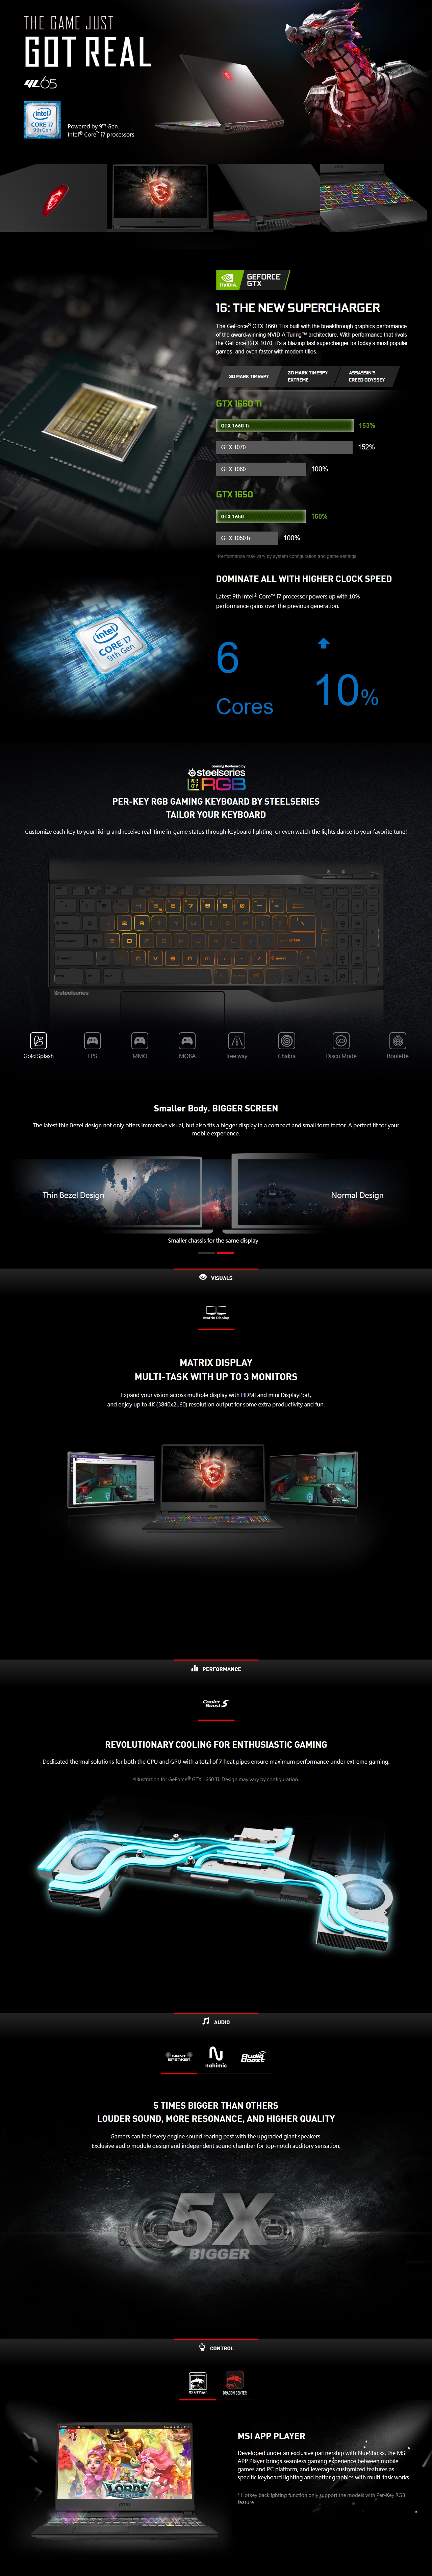 """A large marketing image providing additional information about the product MSI GL65-9SDK-090AU 15.6"""" GTX1660Ti Windows 10 Gaming Notebook - Additional alt info not provided"""